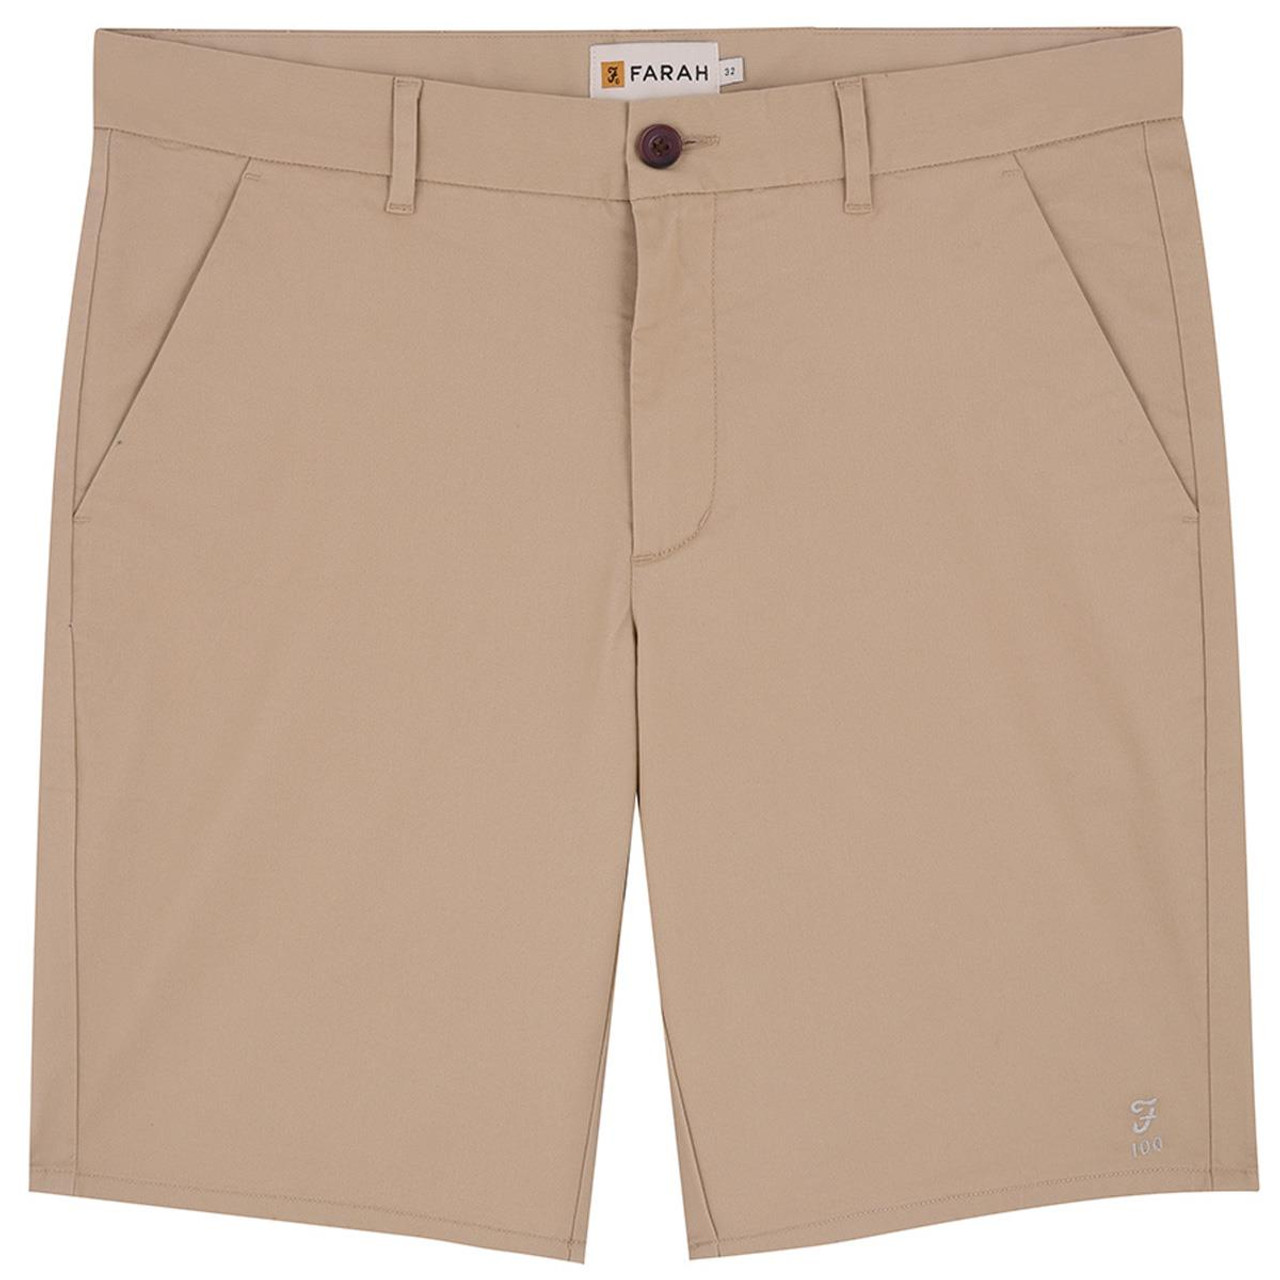 Burnt Sand Farah Mens Bassett Chino Shorts